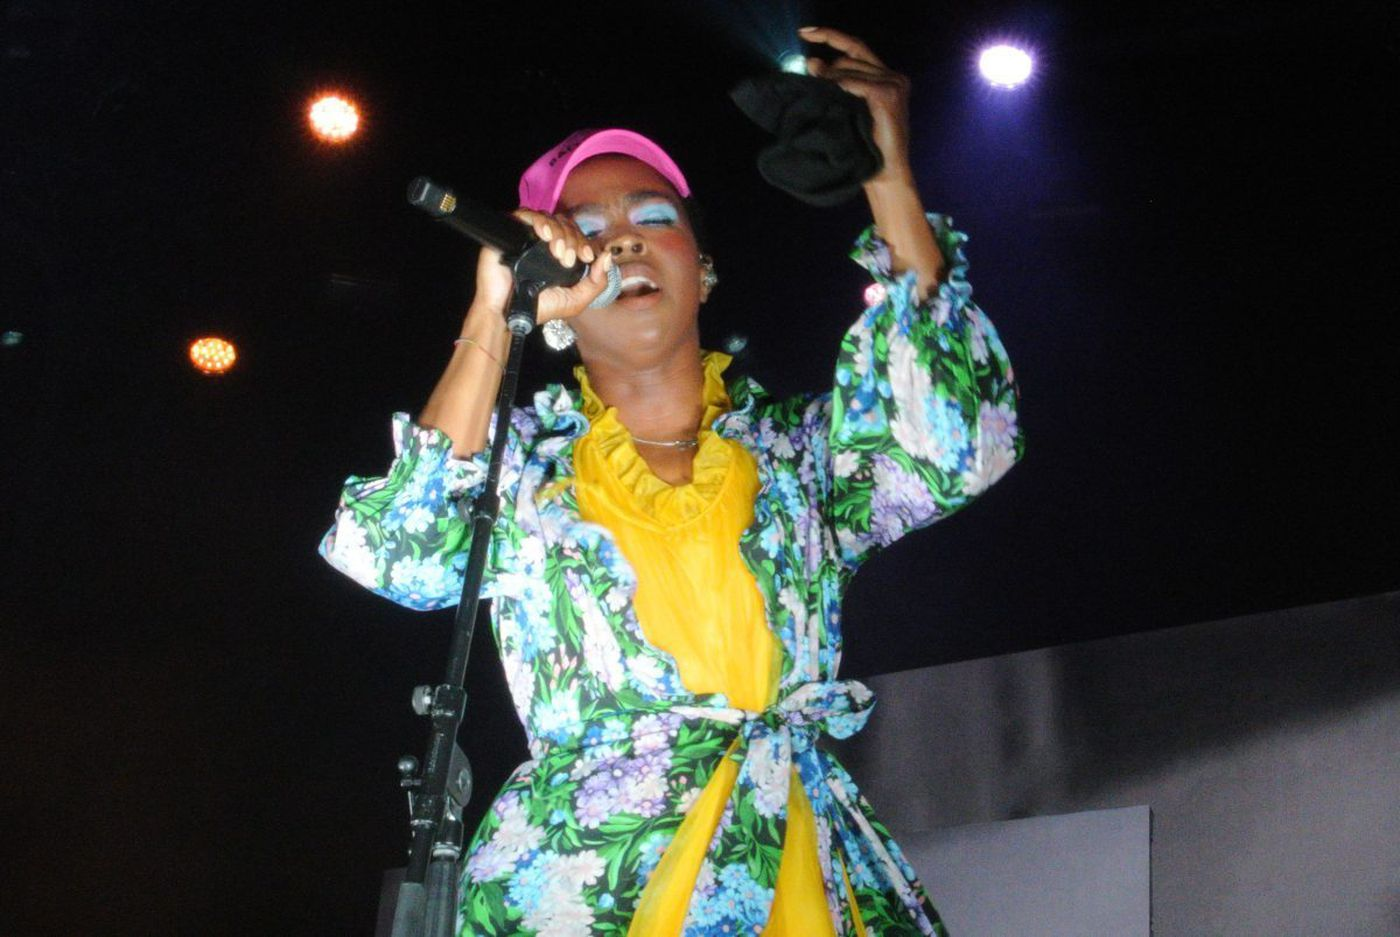 lauryn hill celebrates 20th anniversary of debut album with soulful